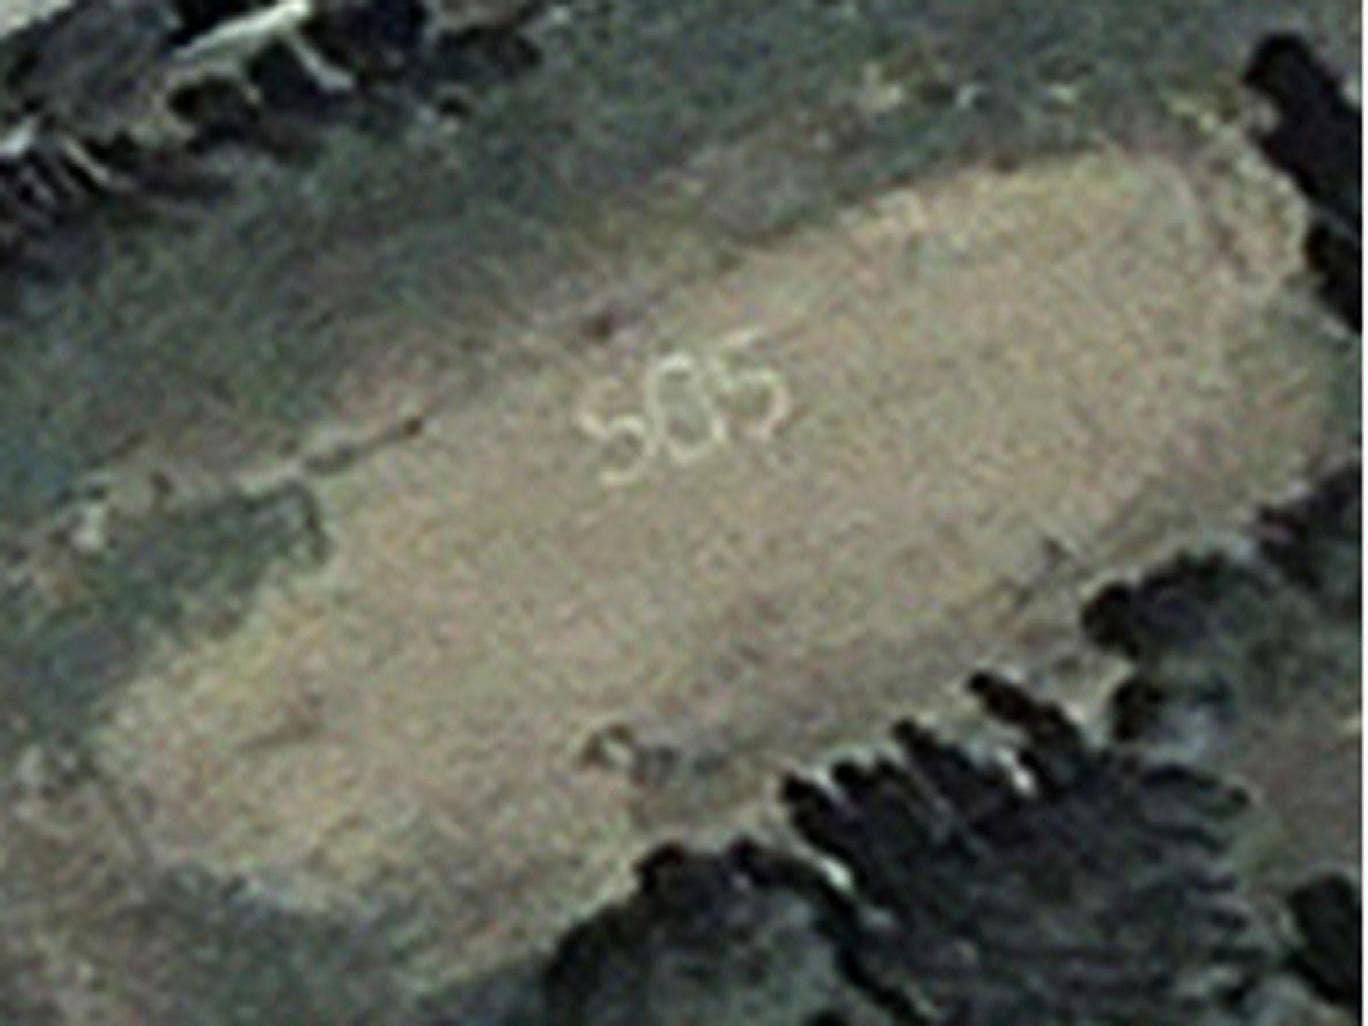 Did 'Gemma Sheridan' make this SOS message in the sands of a Pacific island?